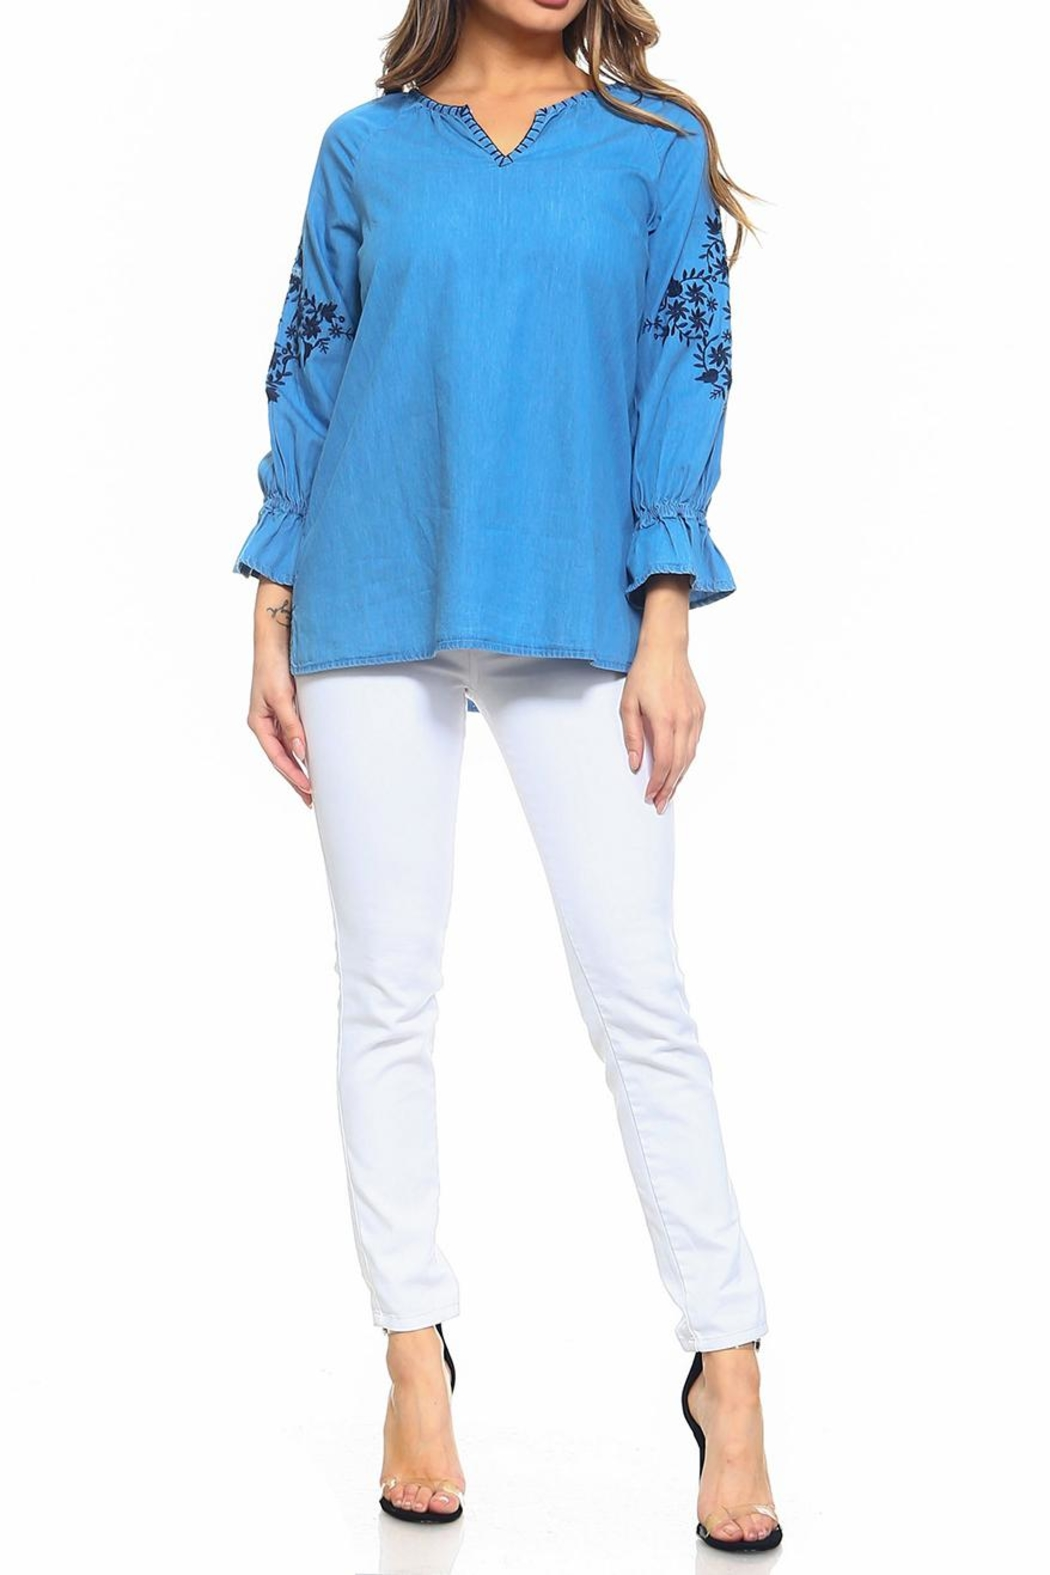 Maison Coupe Denim Embroidered Top - Front Full Image